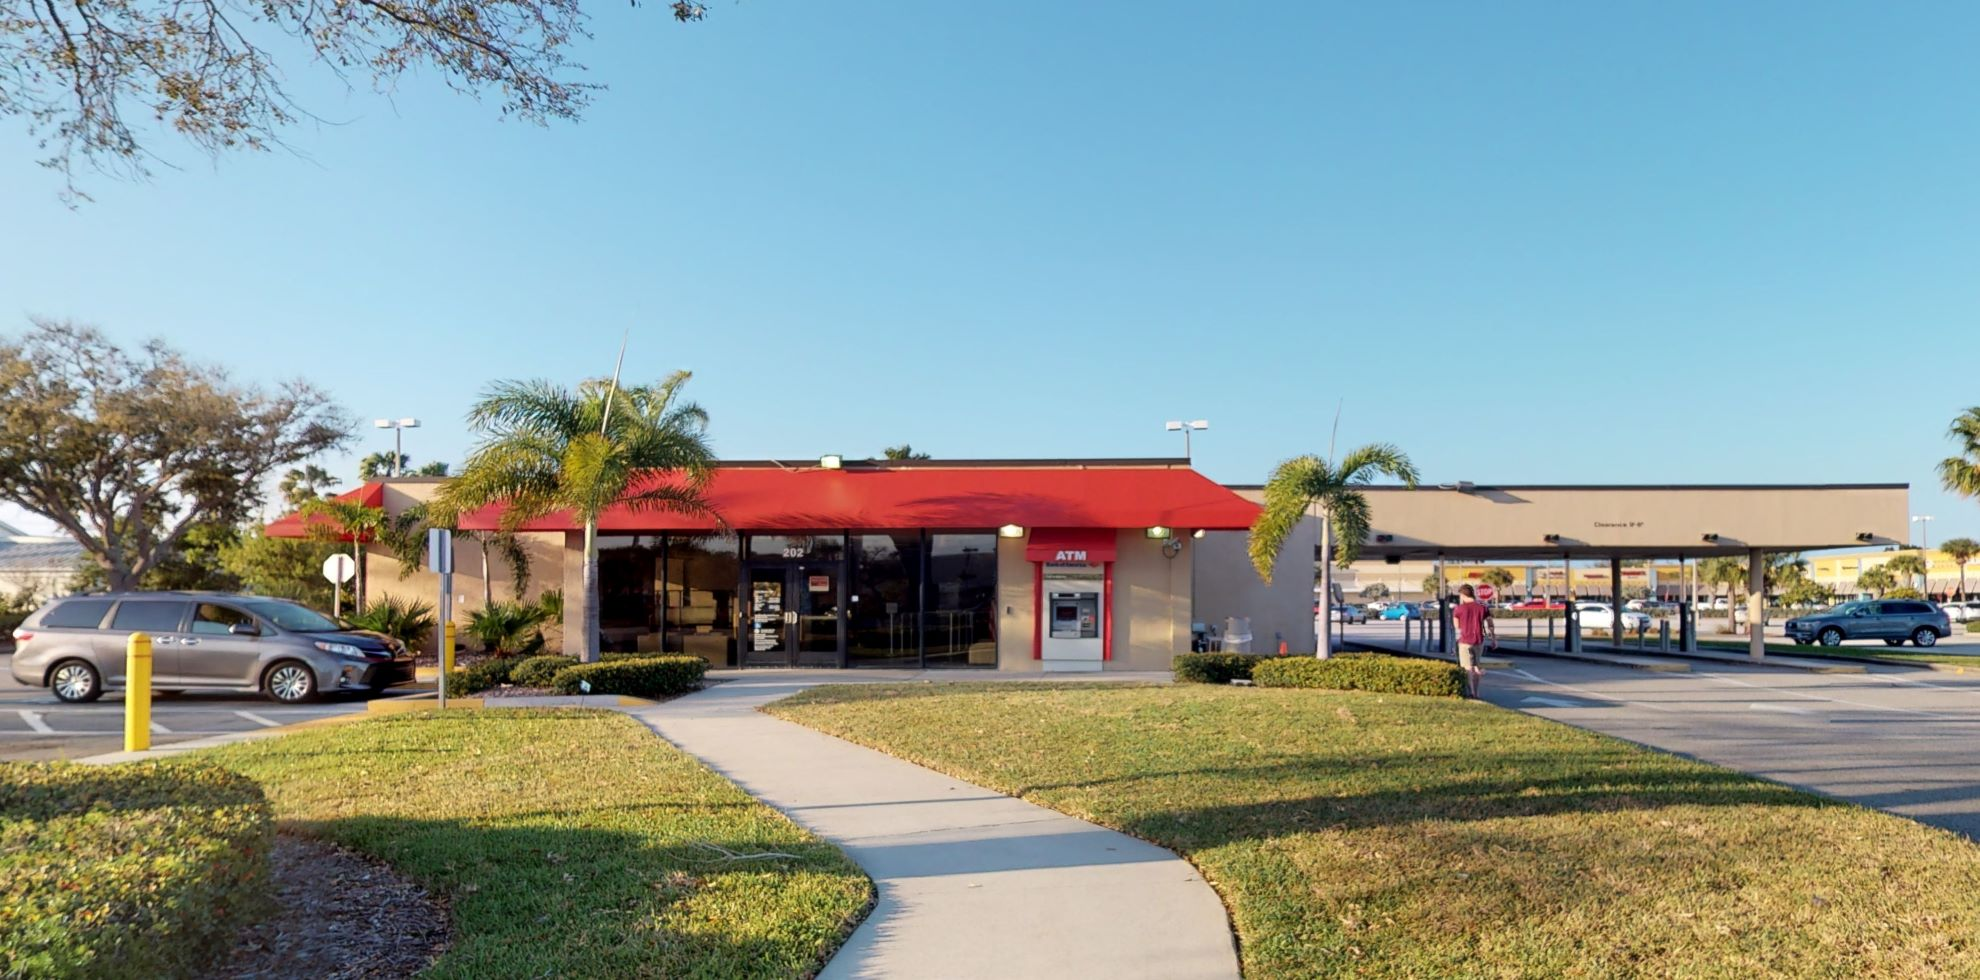 Bank of America financial center with drive-thru ATM and teller   202 E Eau Gallie Blvd, Indian Harbour Beach, FL 32937